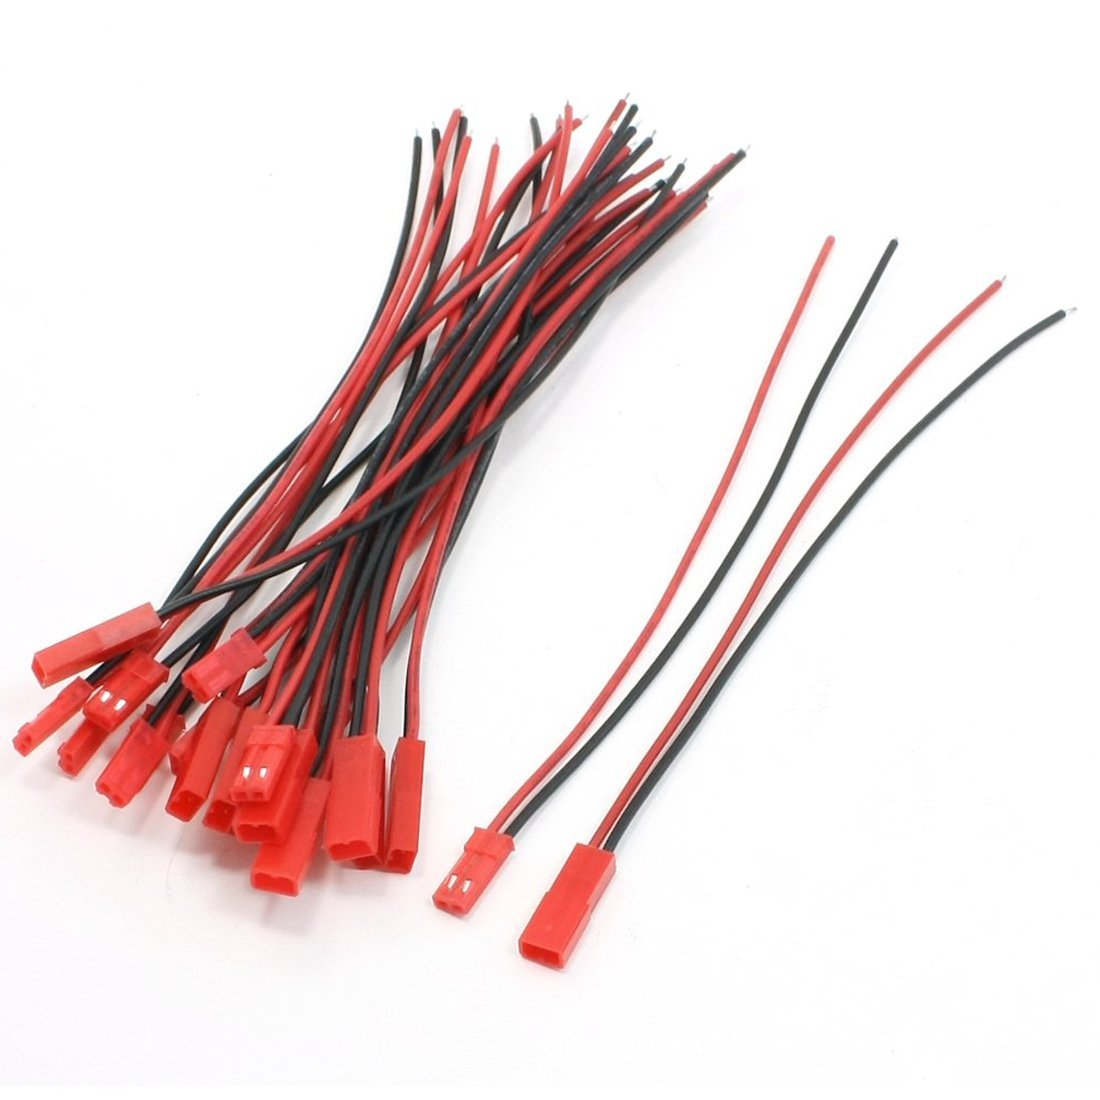 SODIAL(R) 10 Pairs 22AWG 150mm Cable w 2Pin JST M F Plug for RC Battery Motor Connection